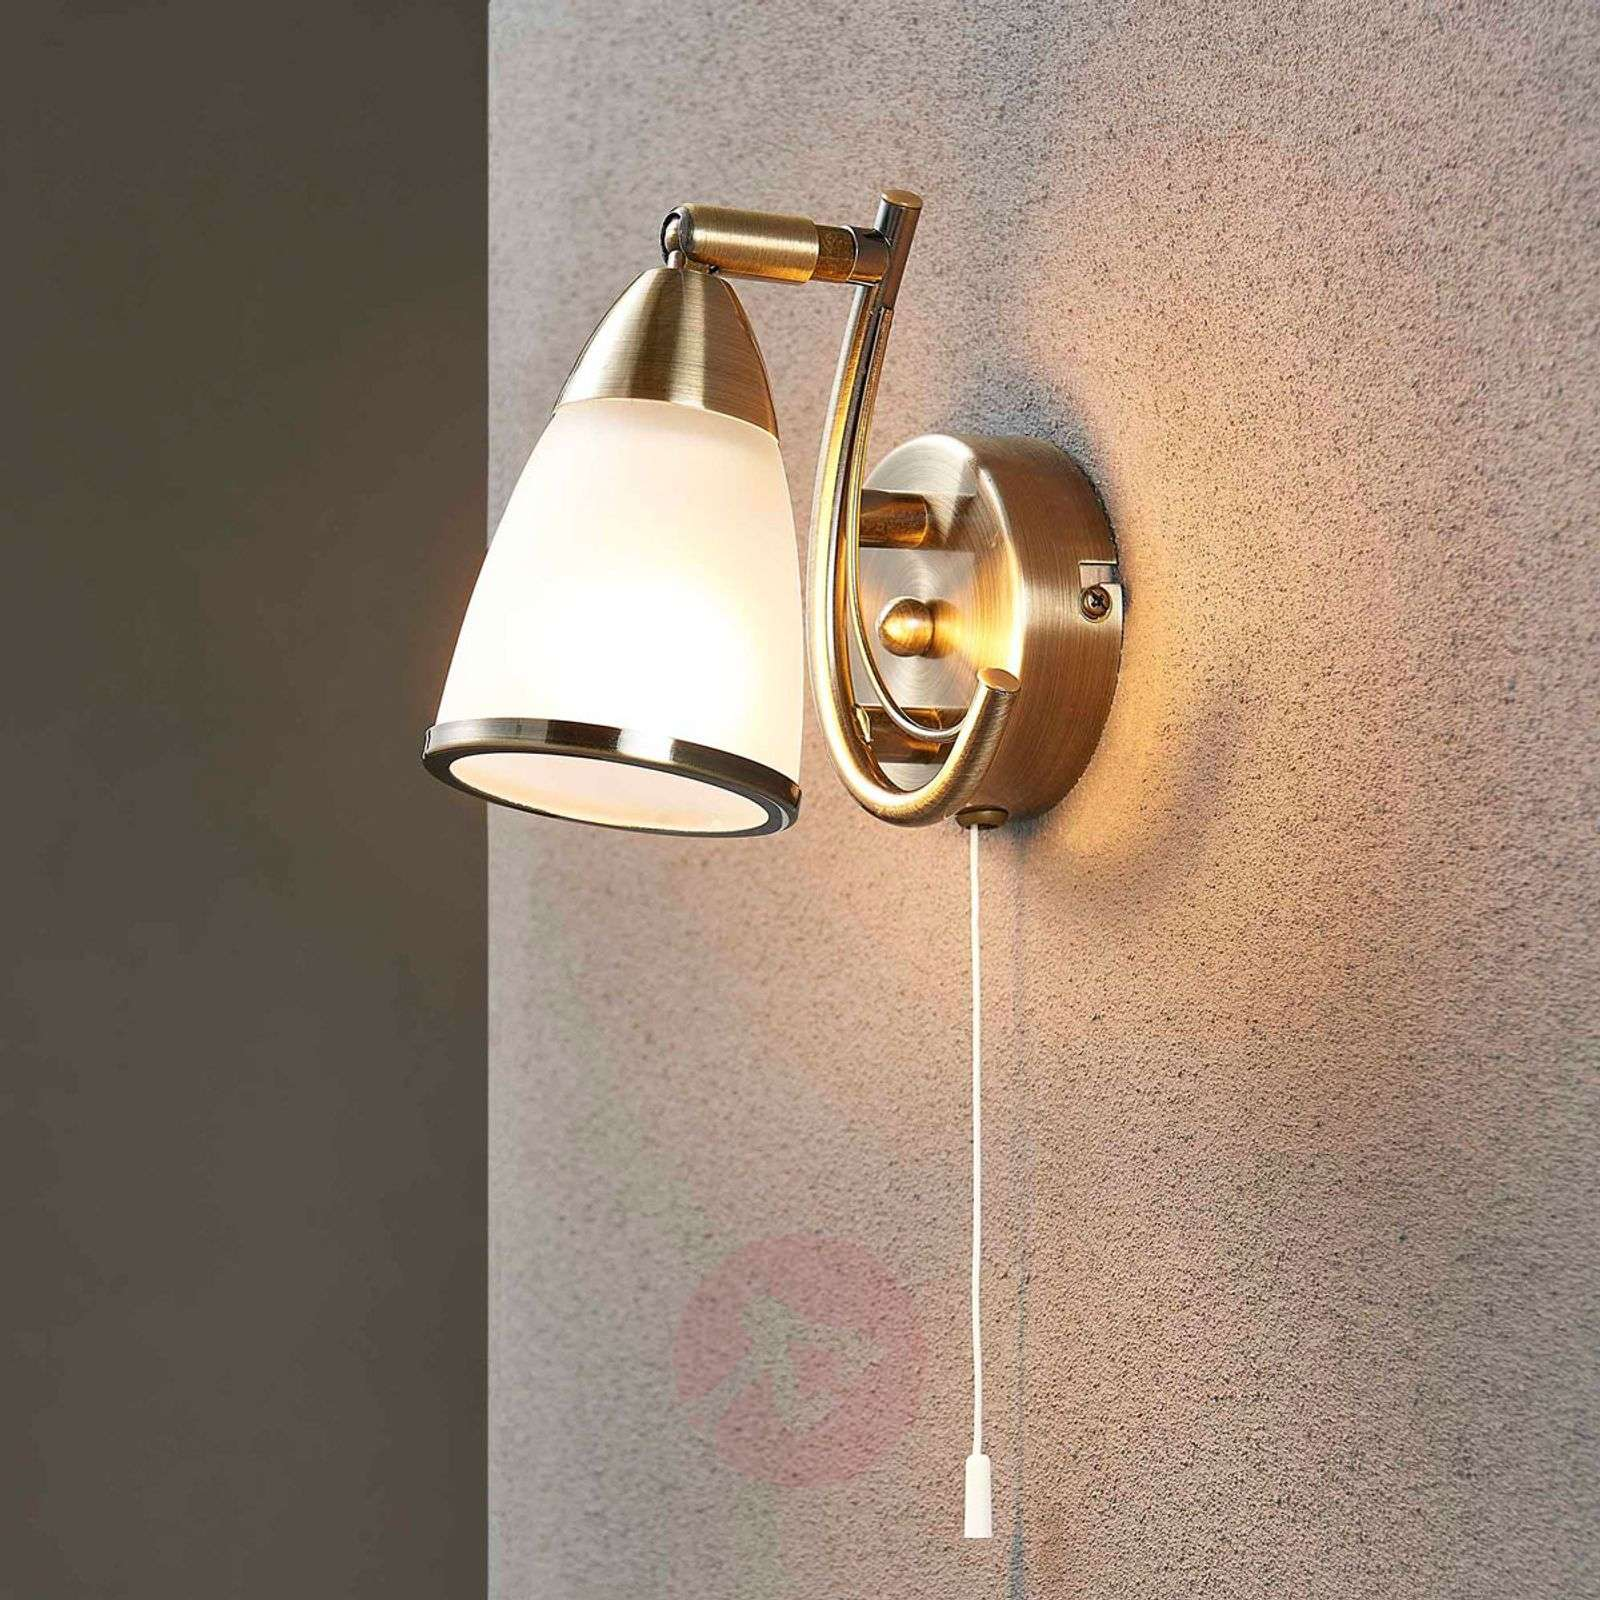 Attractive wall light Irma, antique brass-9620747-07